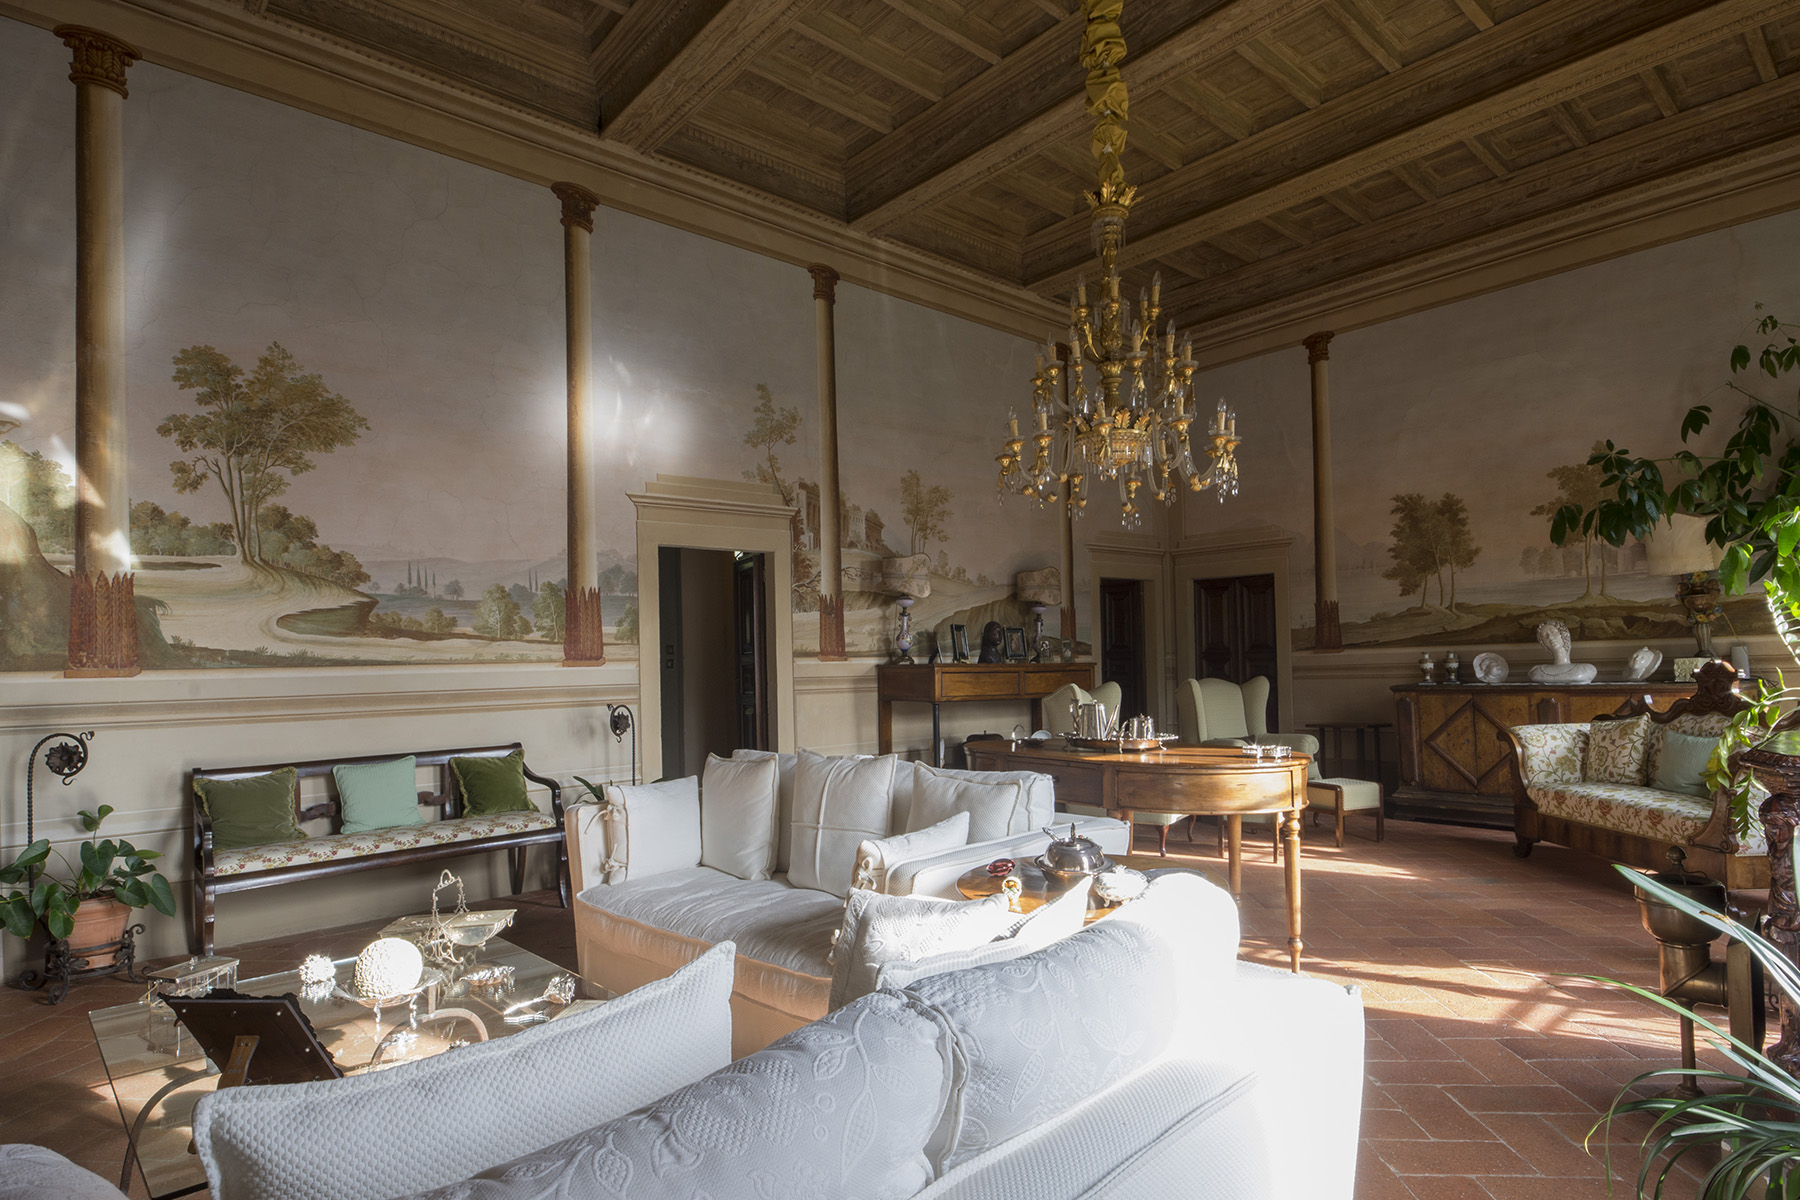 Additional photo for property listing at Stunning apartment in the Tuscan countryside Via San Vito Pistoia, Pistoia 51100 Italia